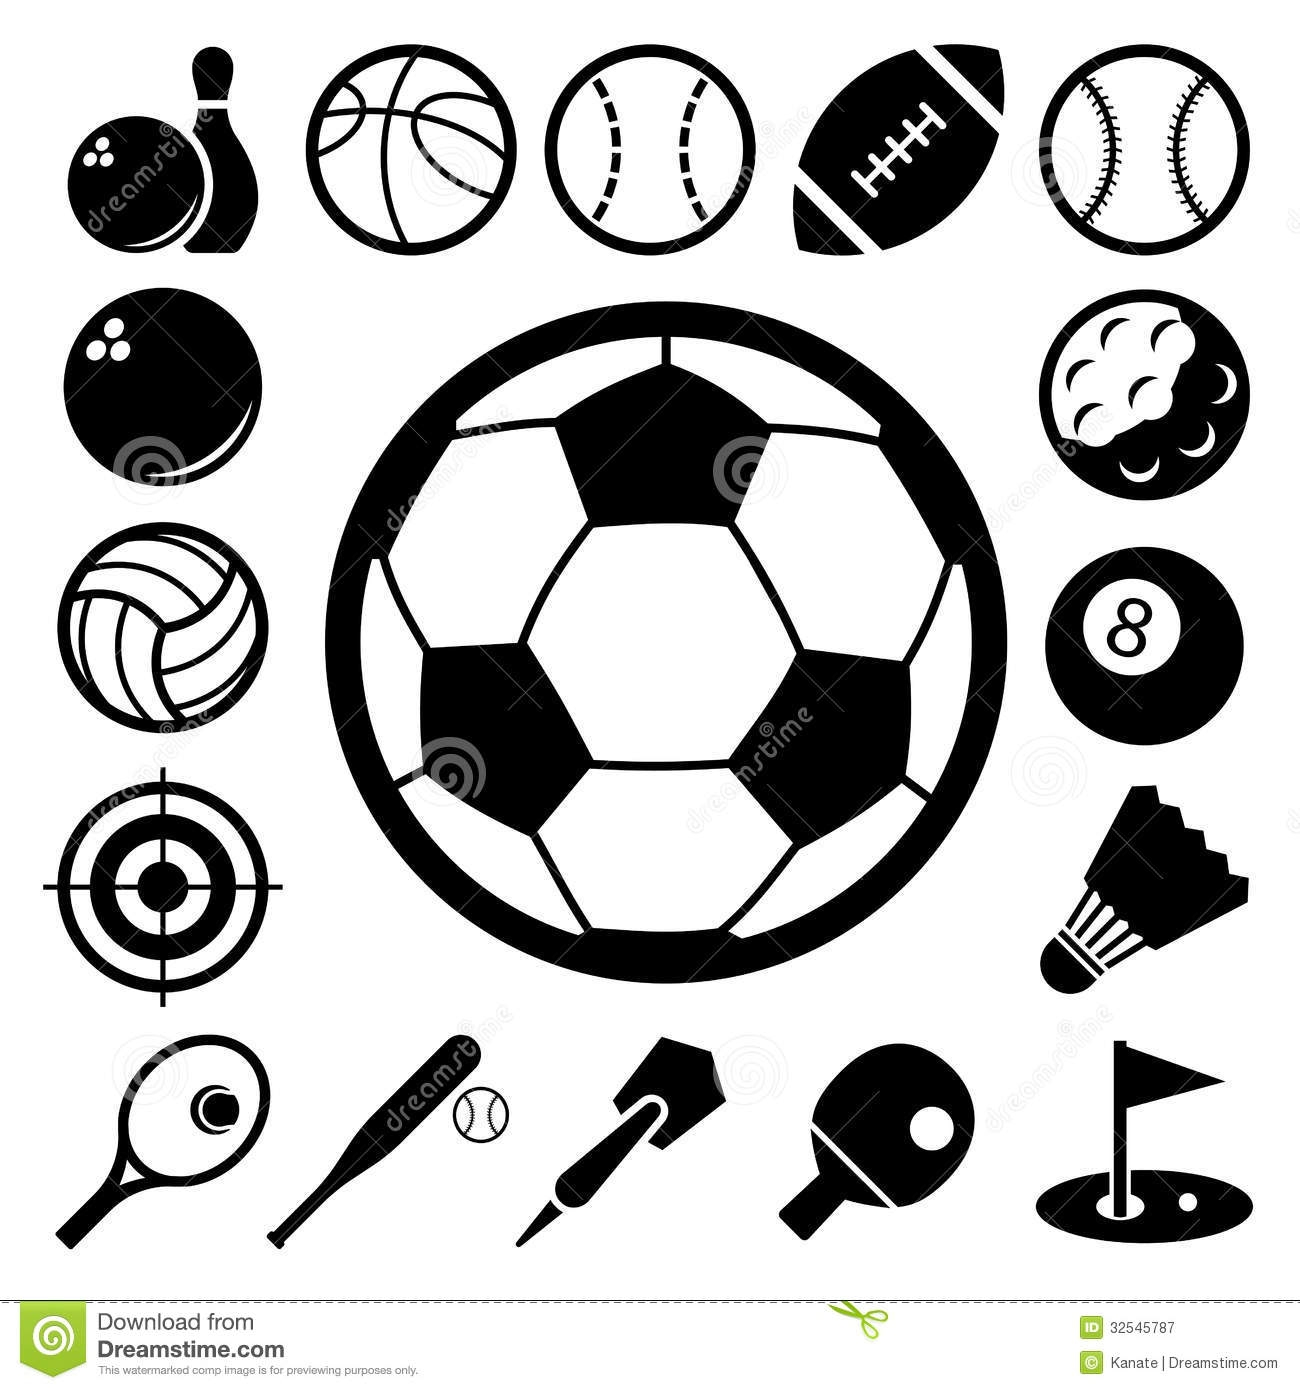 hockey coloring pages - royalty free stock photography sports icons set illustration eps image